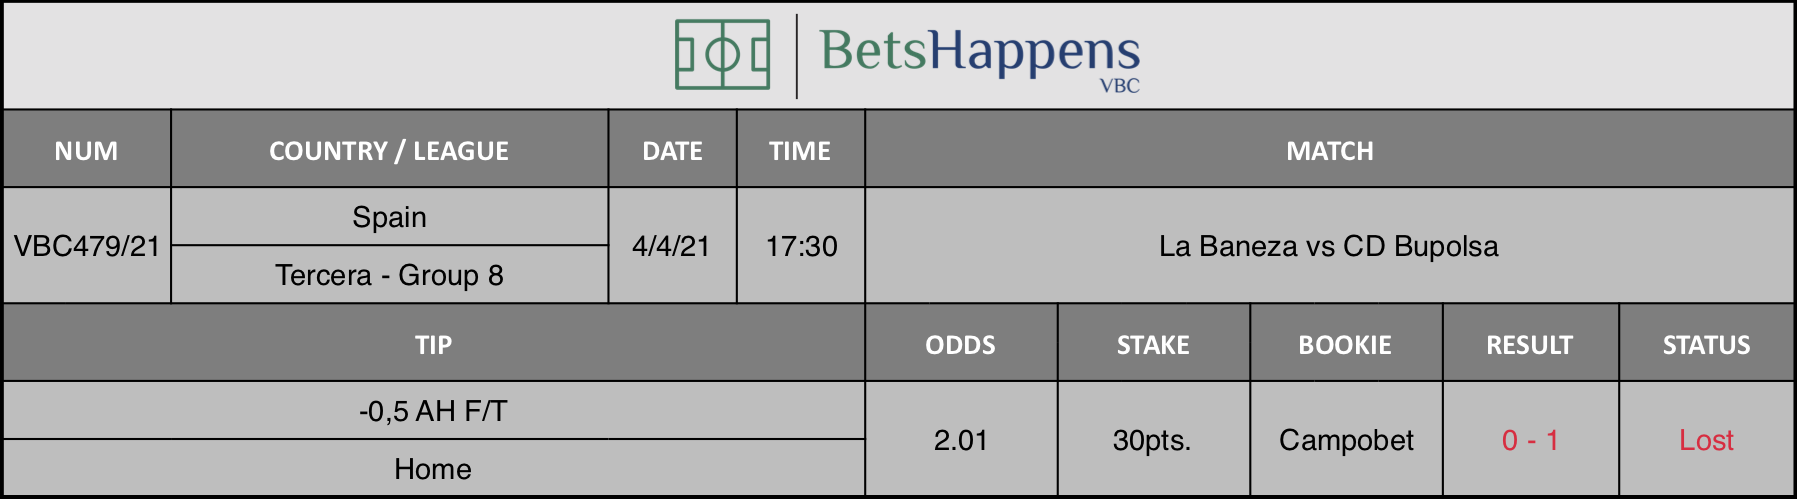 Results of our tip for the La Baneza vs CD Bupolsa match where -0,5 AH F/T Home is recommended.